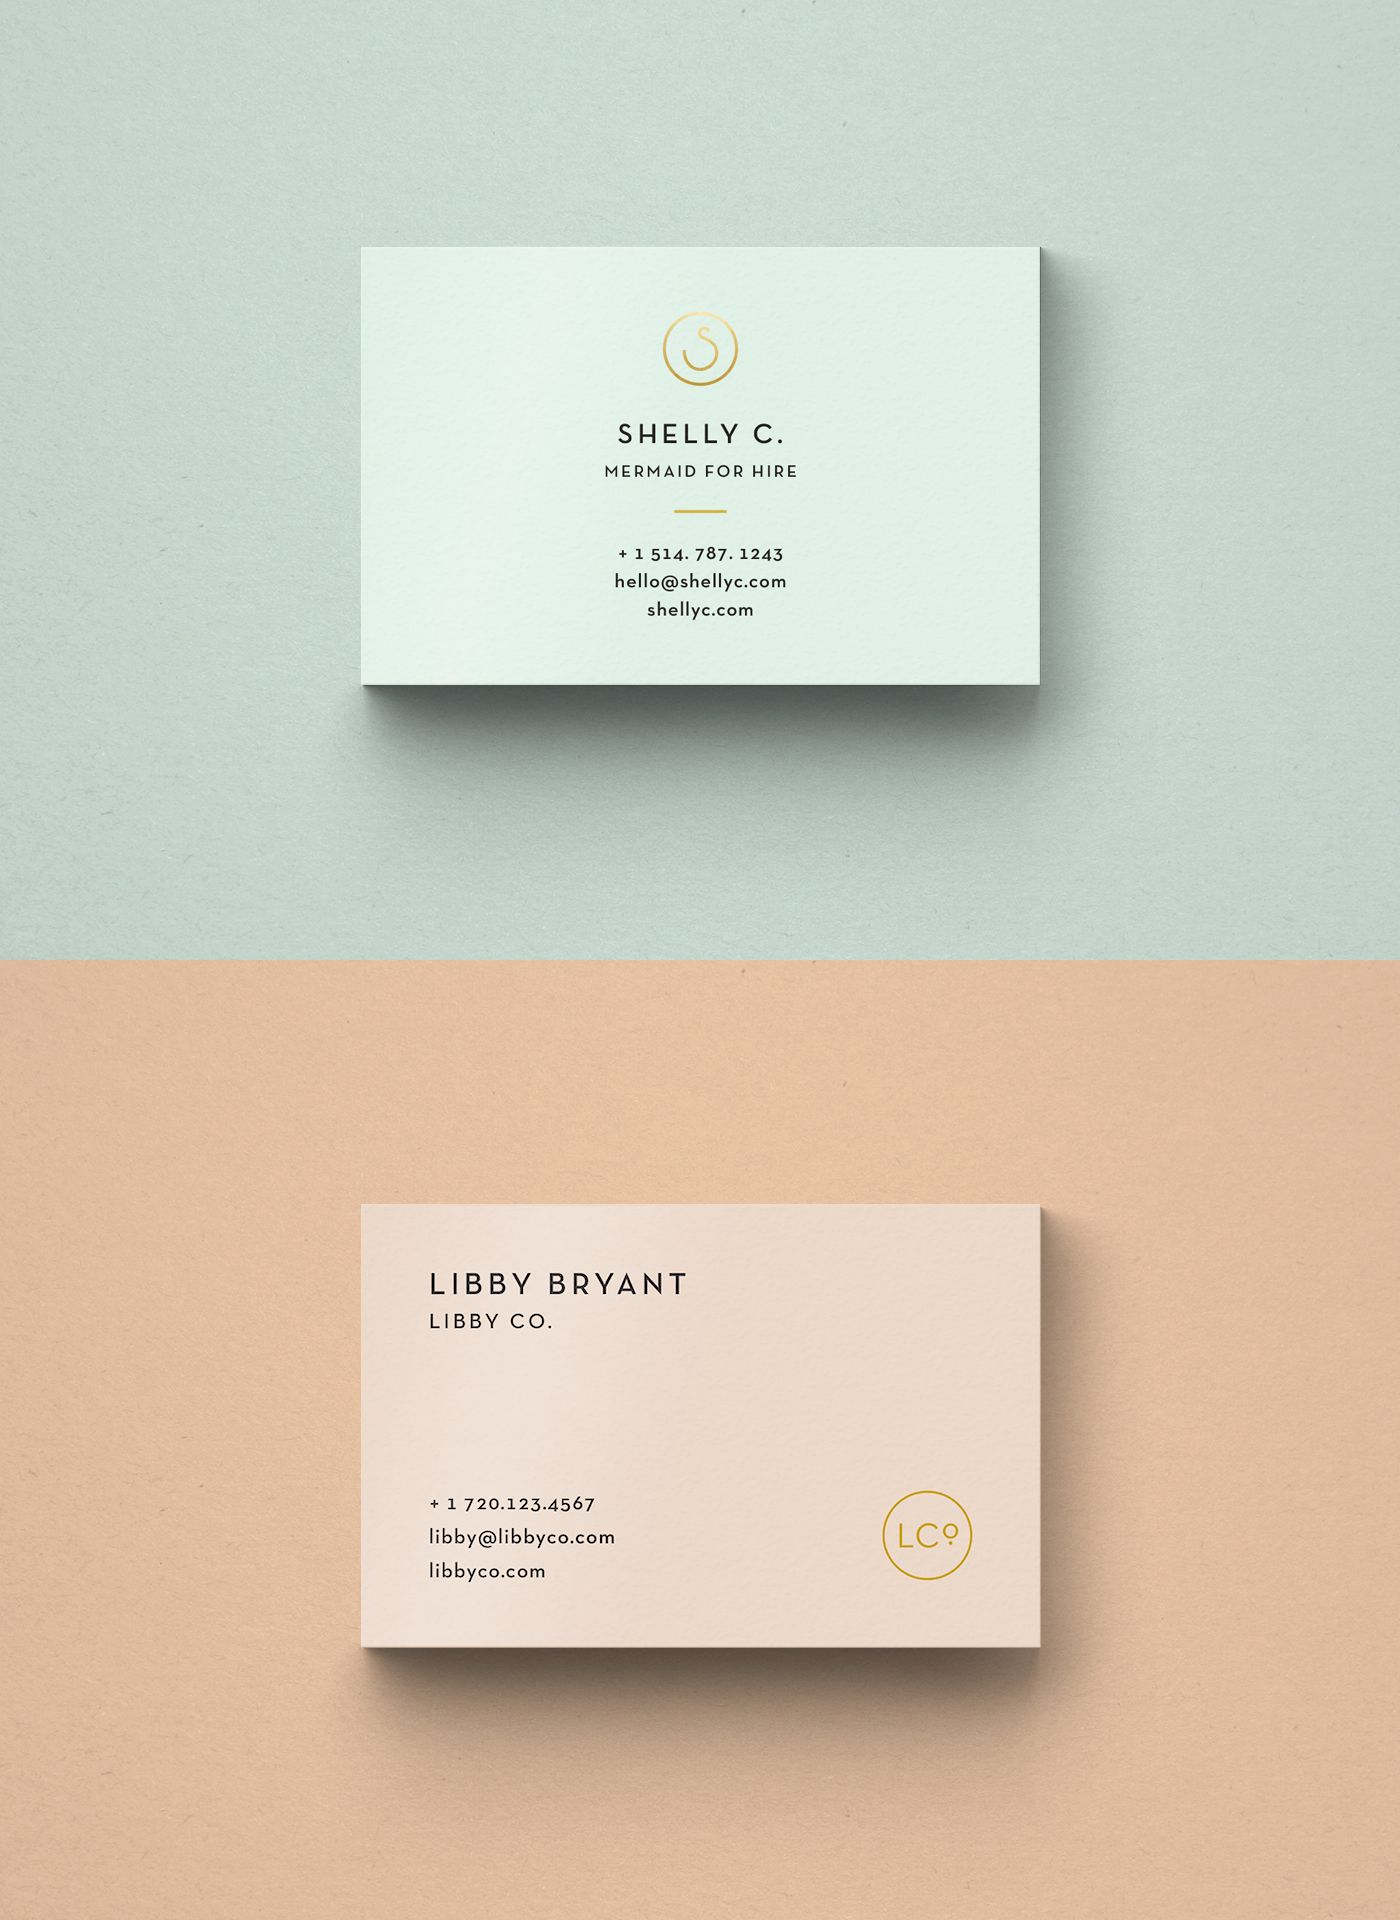 FREE BUSINESS CARD TEMPLATES | Pinterest | Card templates, Business ...